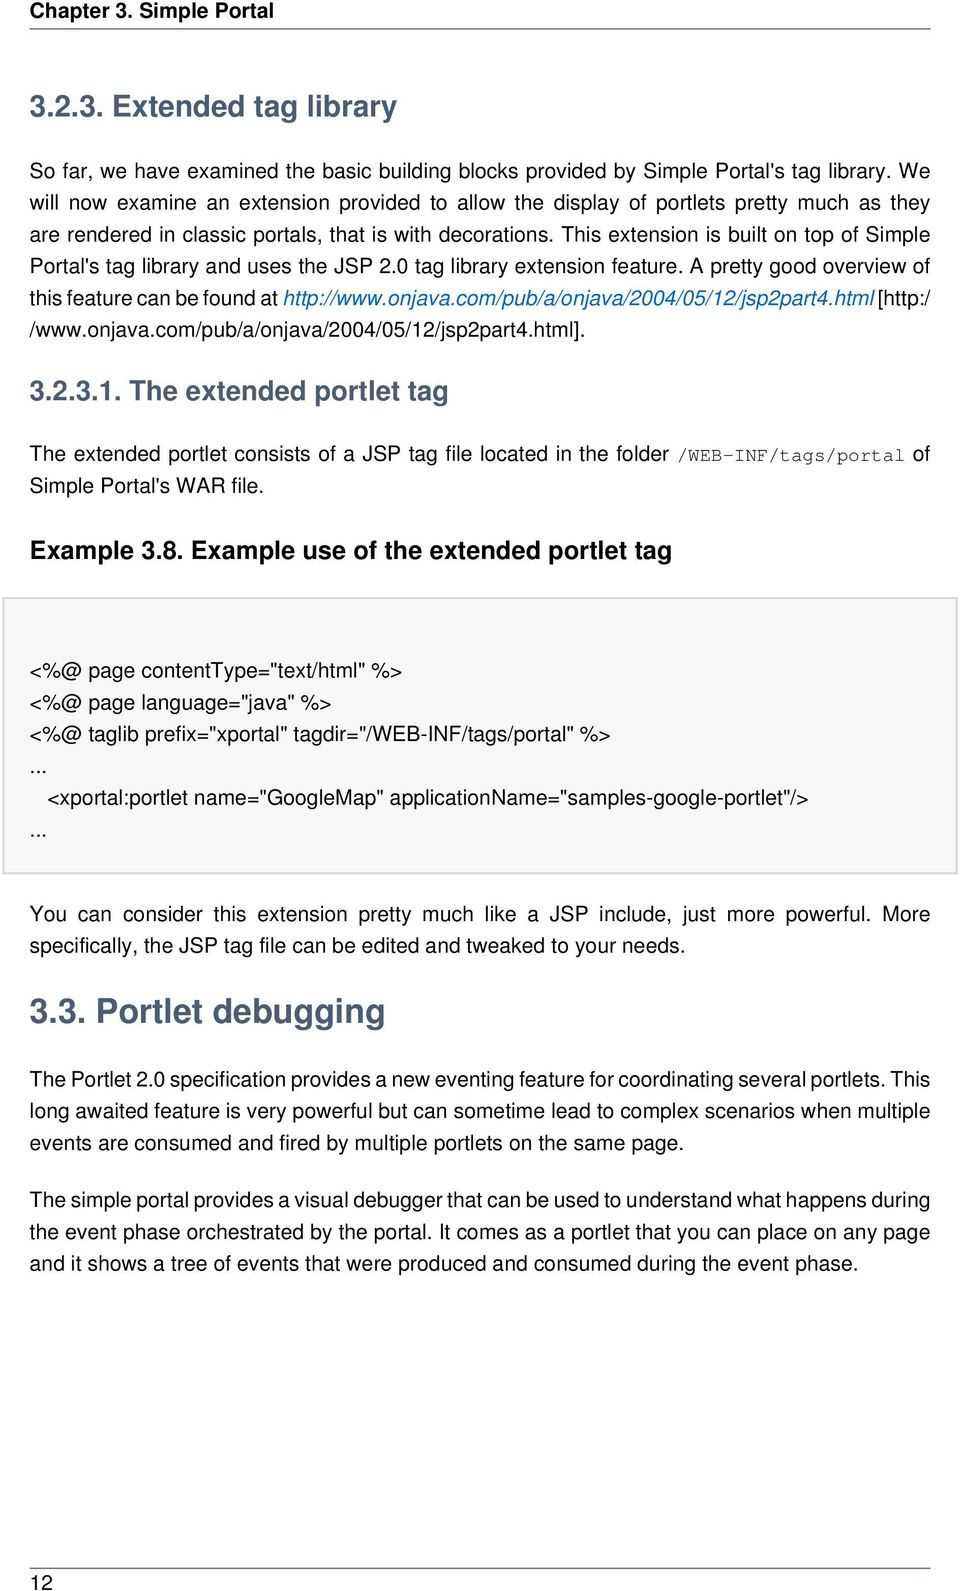 This extension is built on top of Simple Portal's tag library and uses the JSP 2.0 tag library extension feature. A pretty good overview of this feature can be found at http://www.onjava.